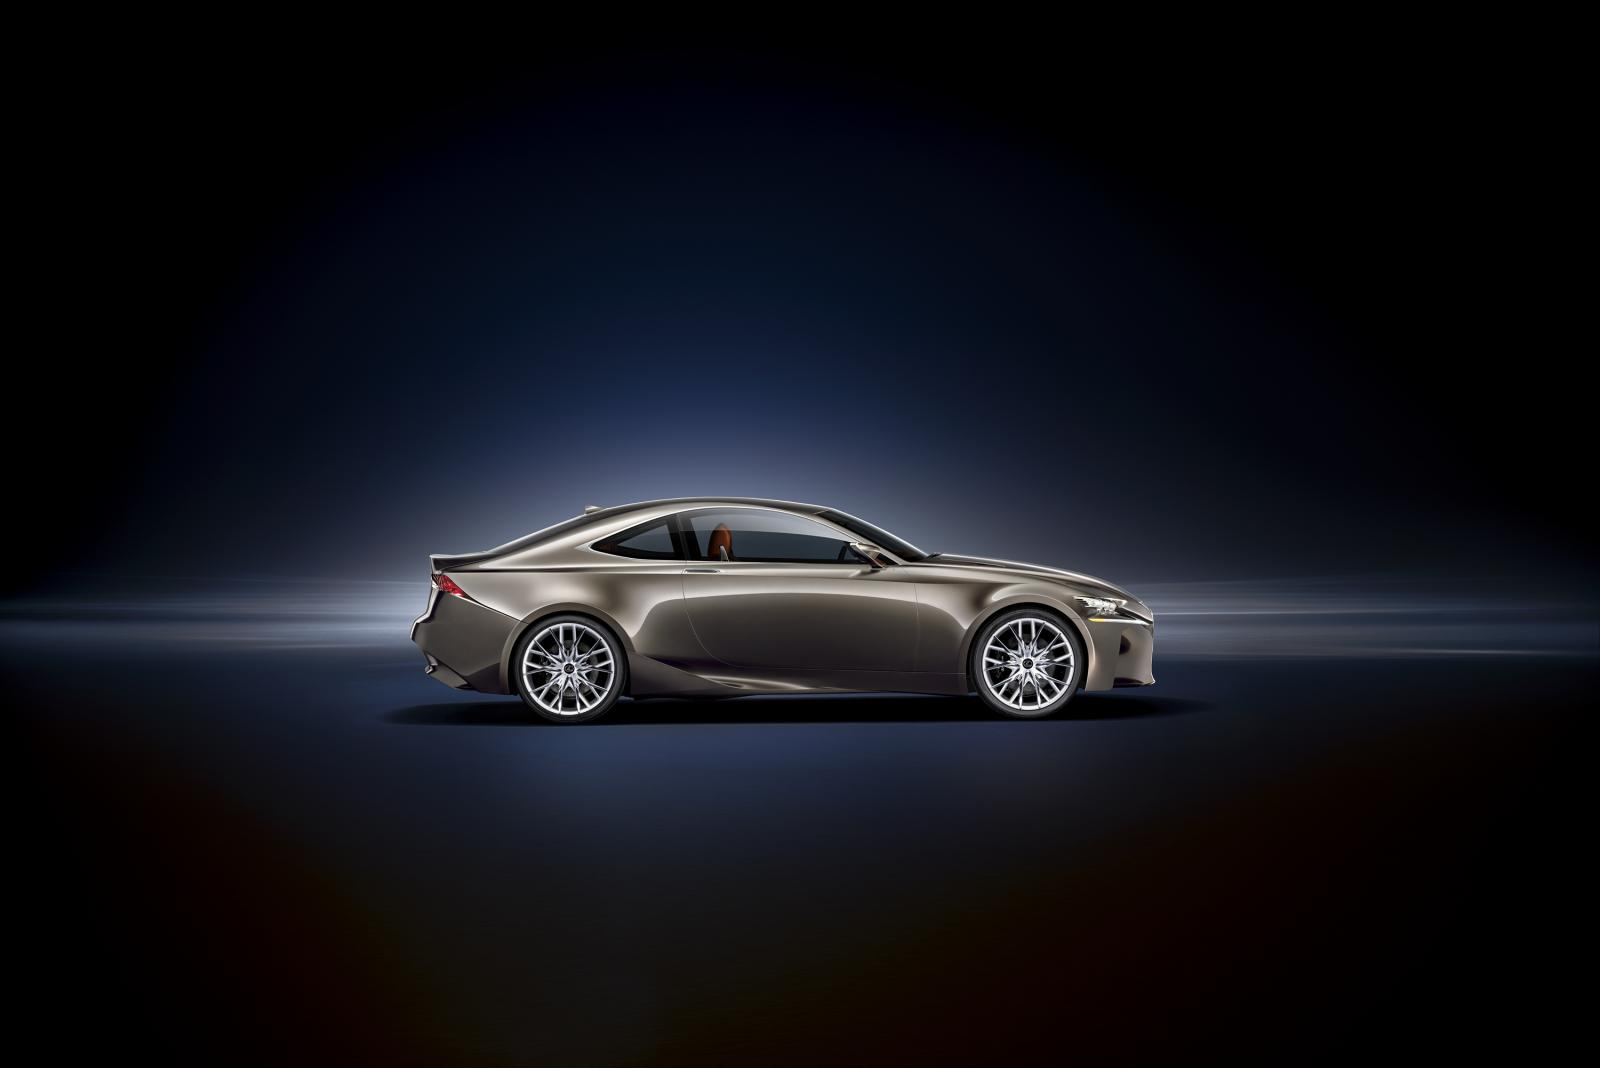 reviews of new cars - lexus cars